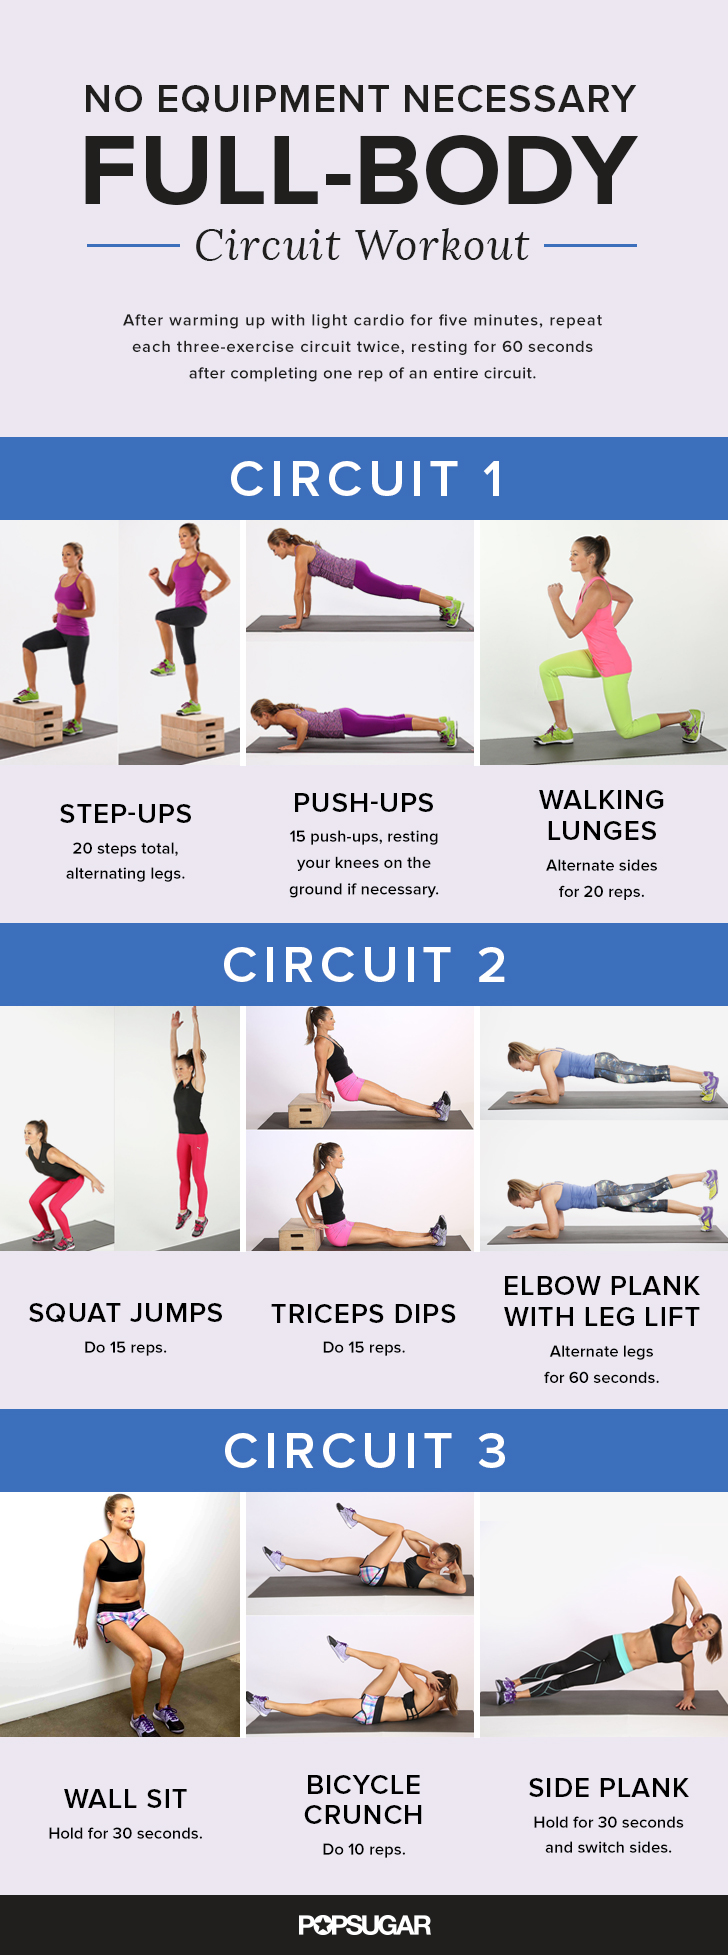 Full Body Workouts That You Can Do At Home